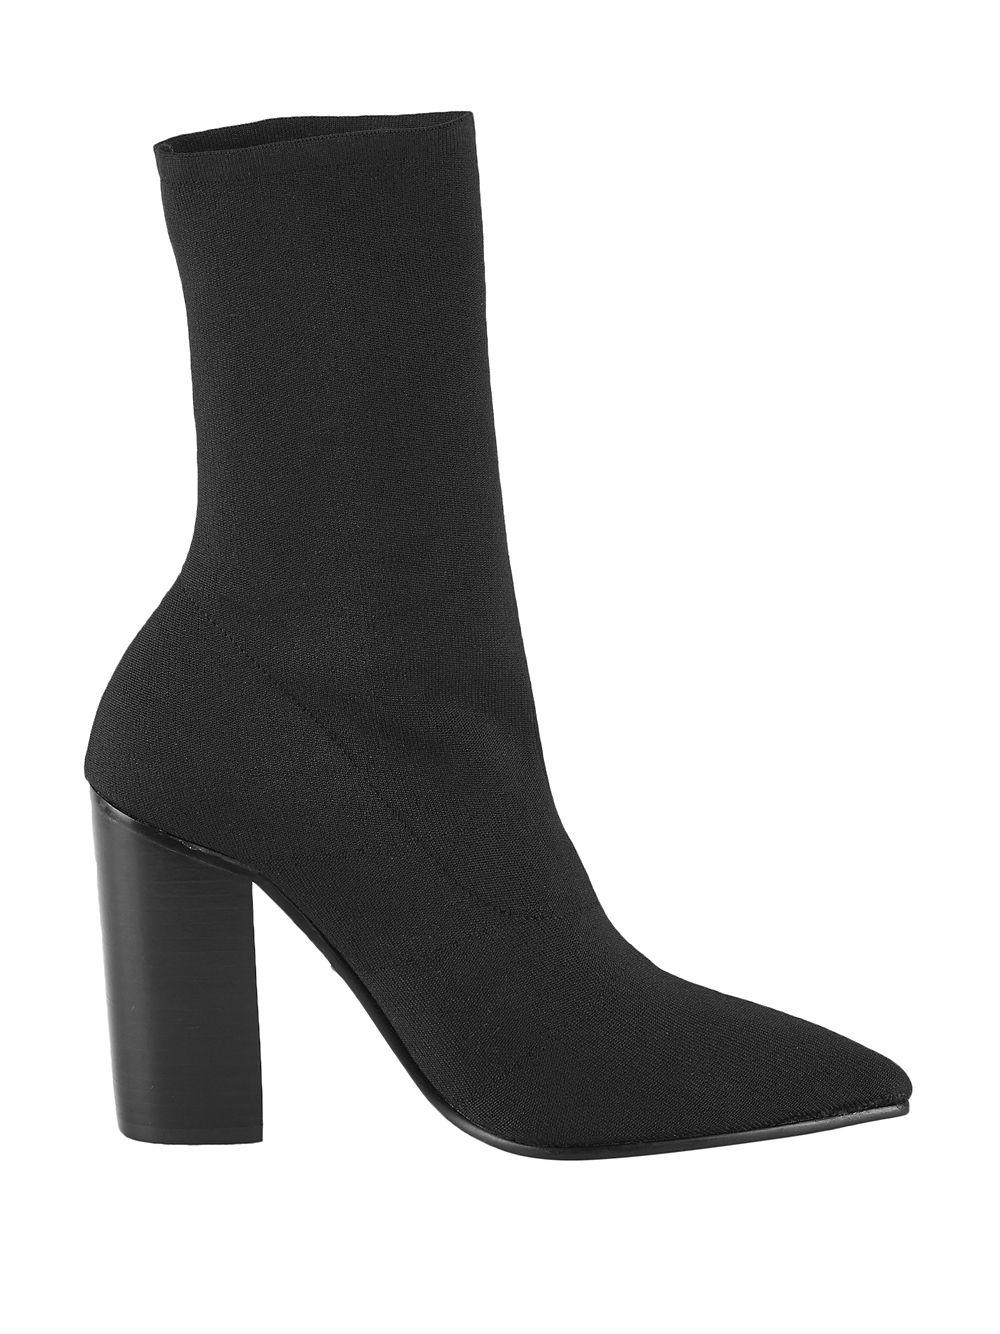 2bf794b9402a Lyst - Sol Sana Dannii Point-toe Boots in Black